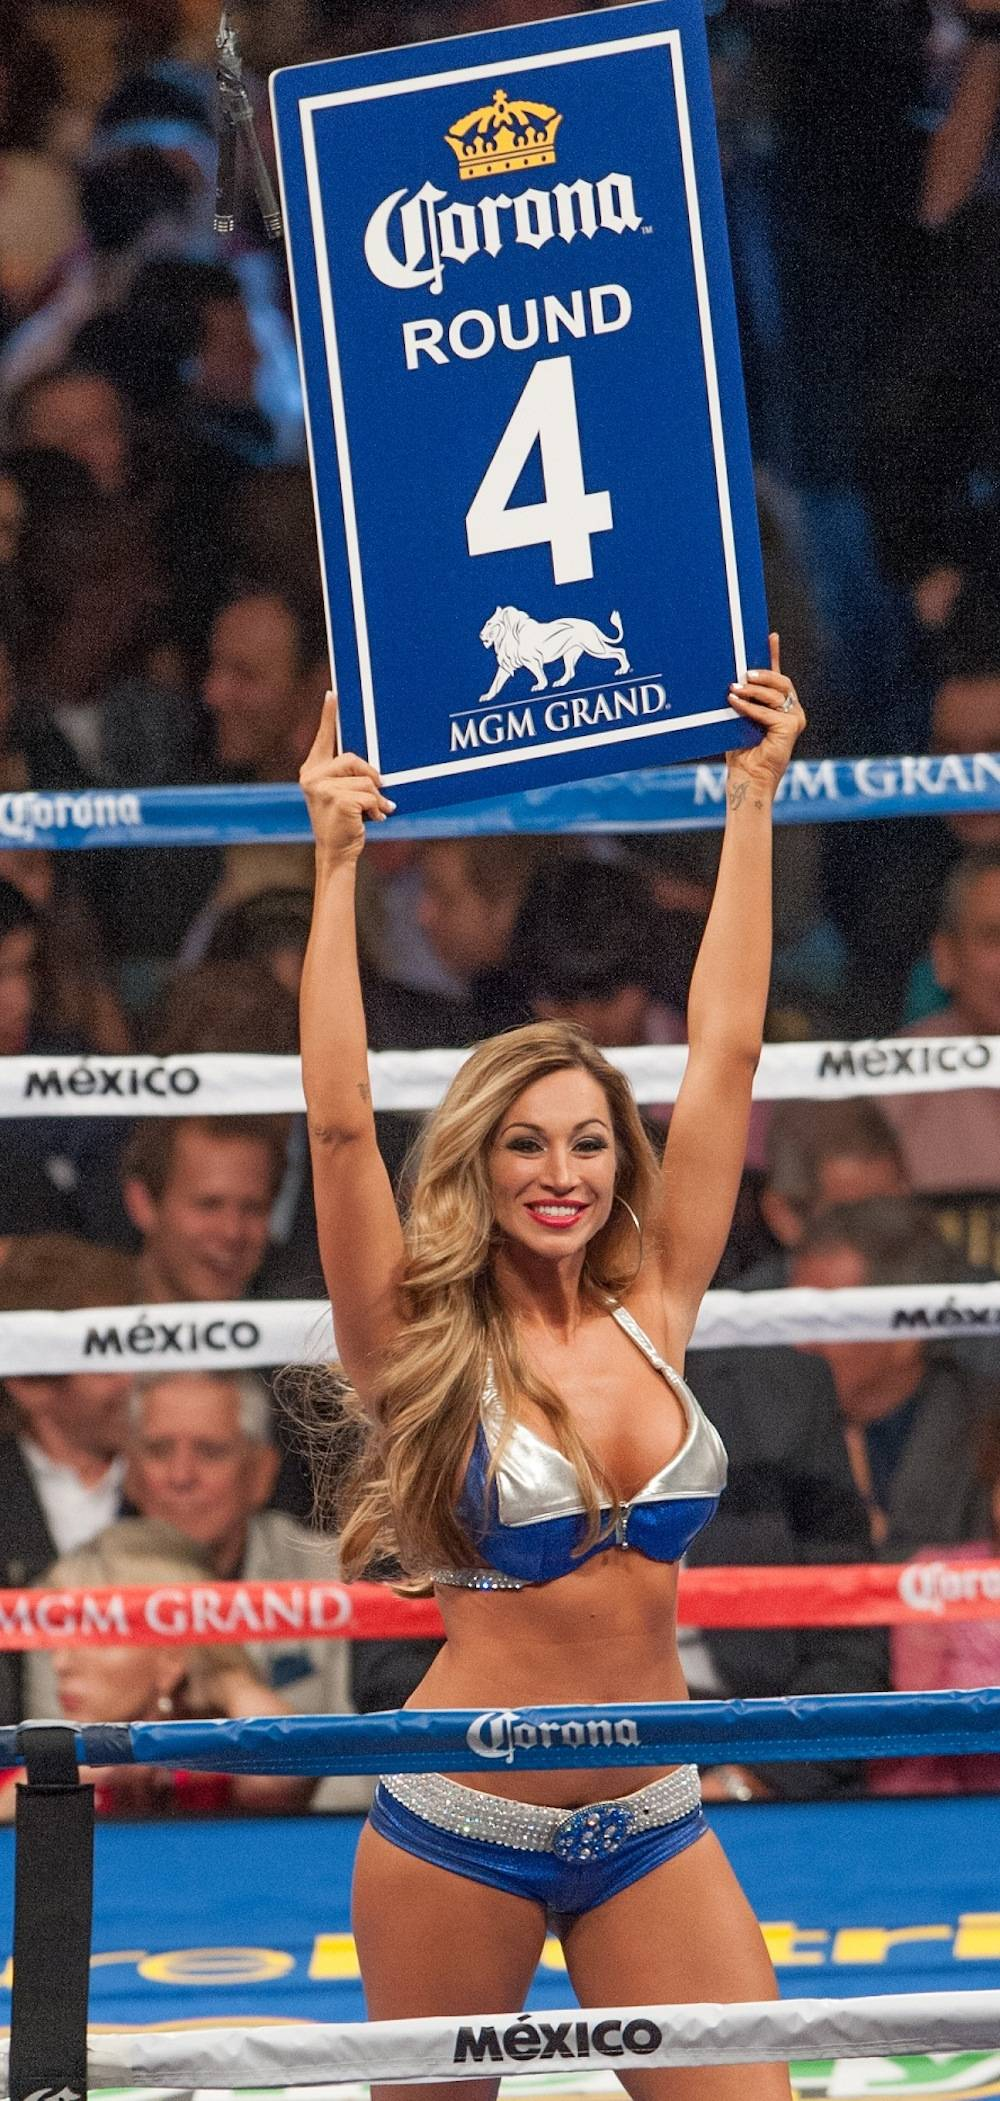 Jaime Lynch as Ring Girl Round 4 Mayweather v. Canelo